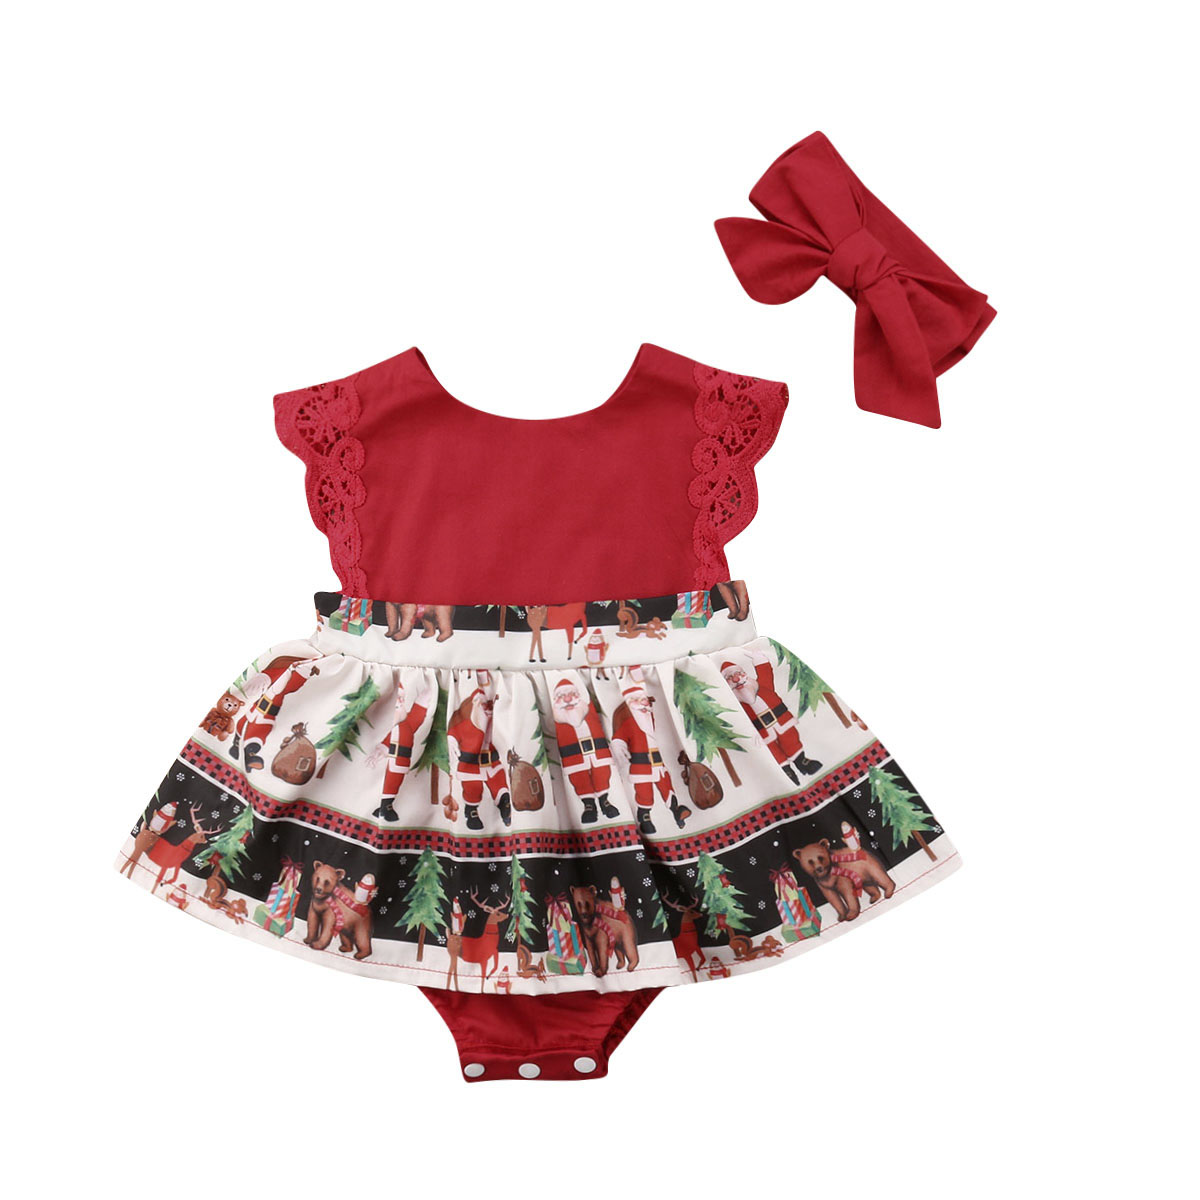 Christmas Newborn Baby Girls Xmas Santa One-piece Party   Romper   Dress Outfits